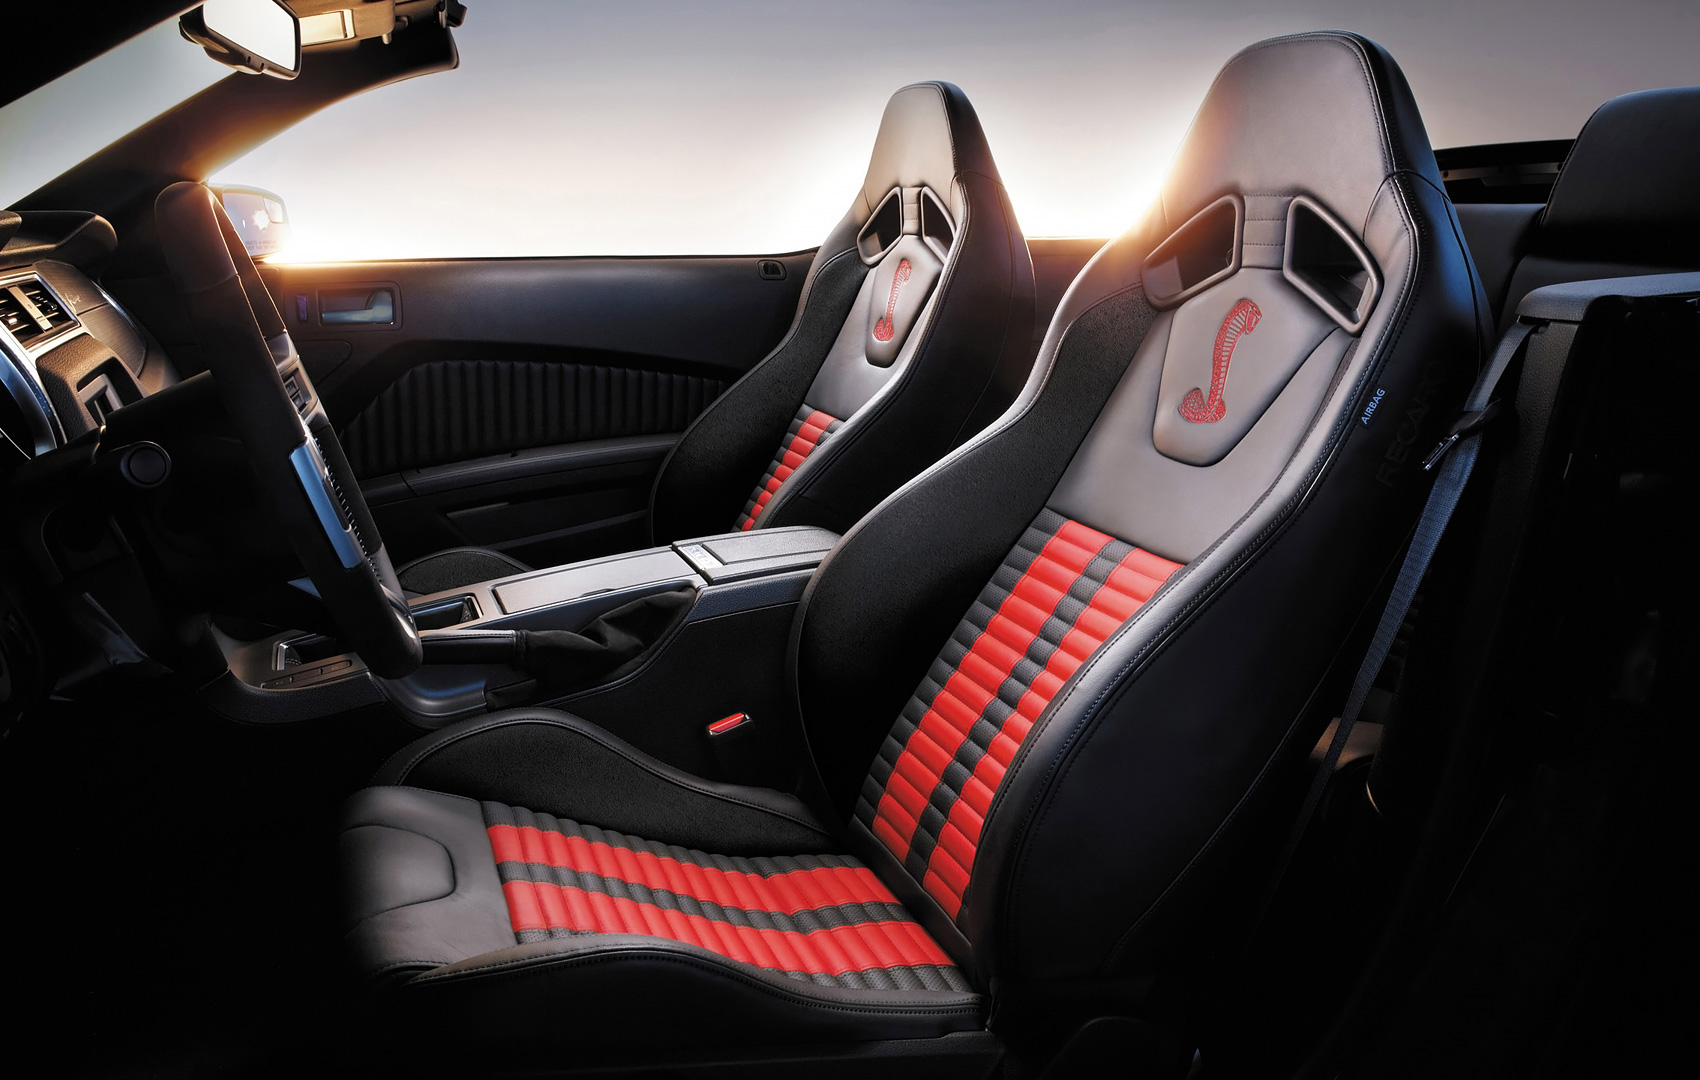 WDI produces seats for RECARO and Ford Mustang. WDI also purchases ownership of SIXINCH USA.